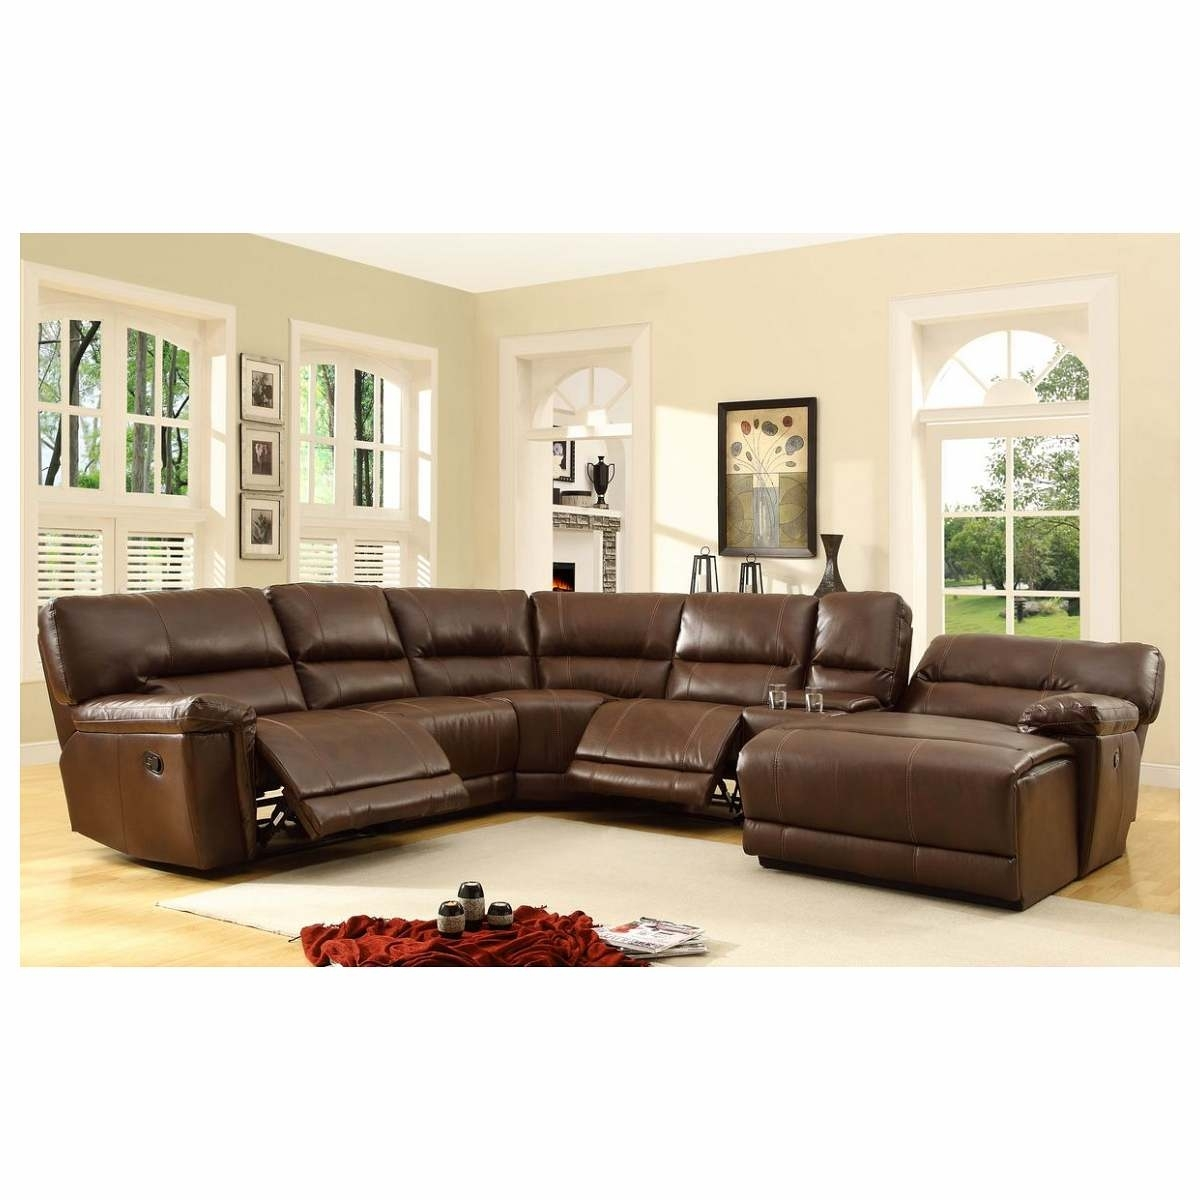 6 Pc Blythe Collection Brown Bonded Leather Match Upholstered With Tampa Fl Sectional Sofas (Photo 8 of 10)